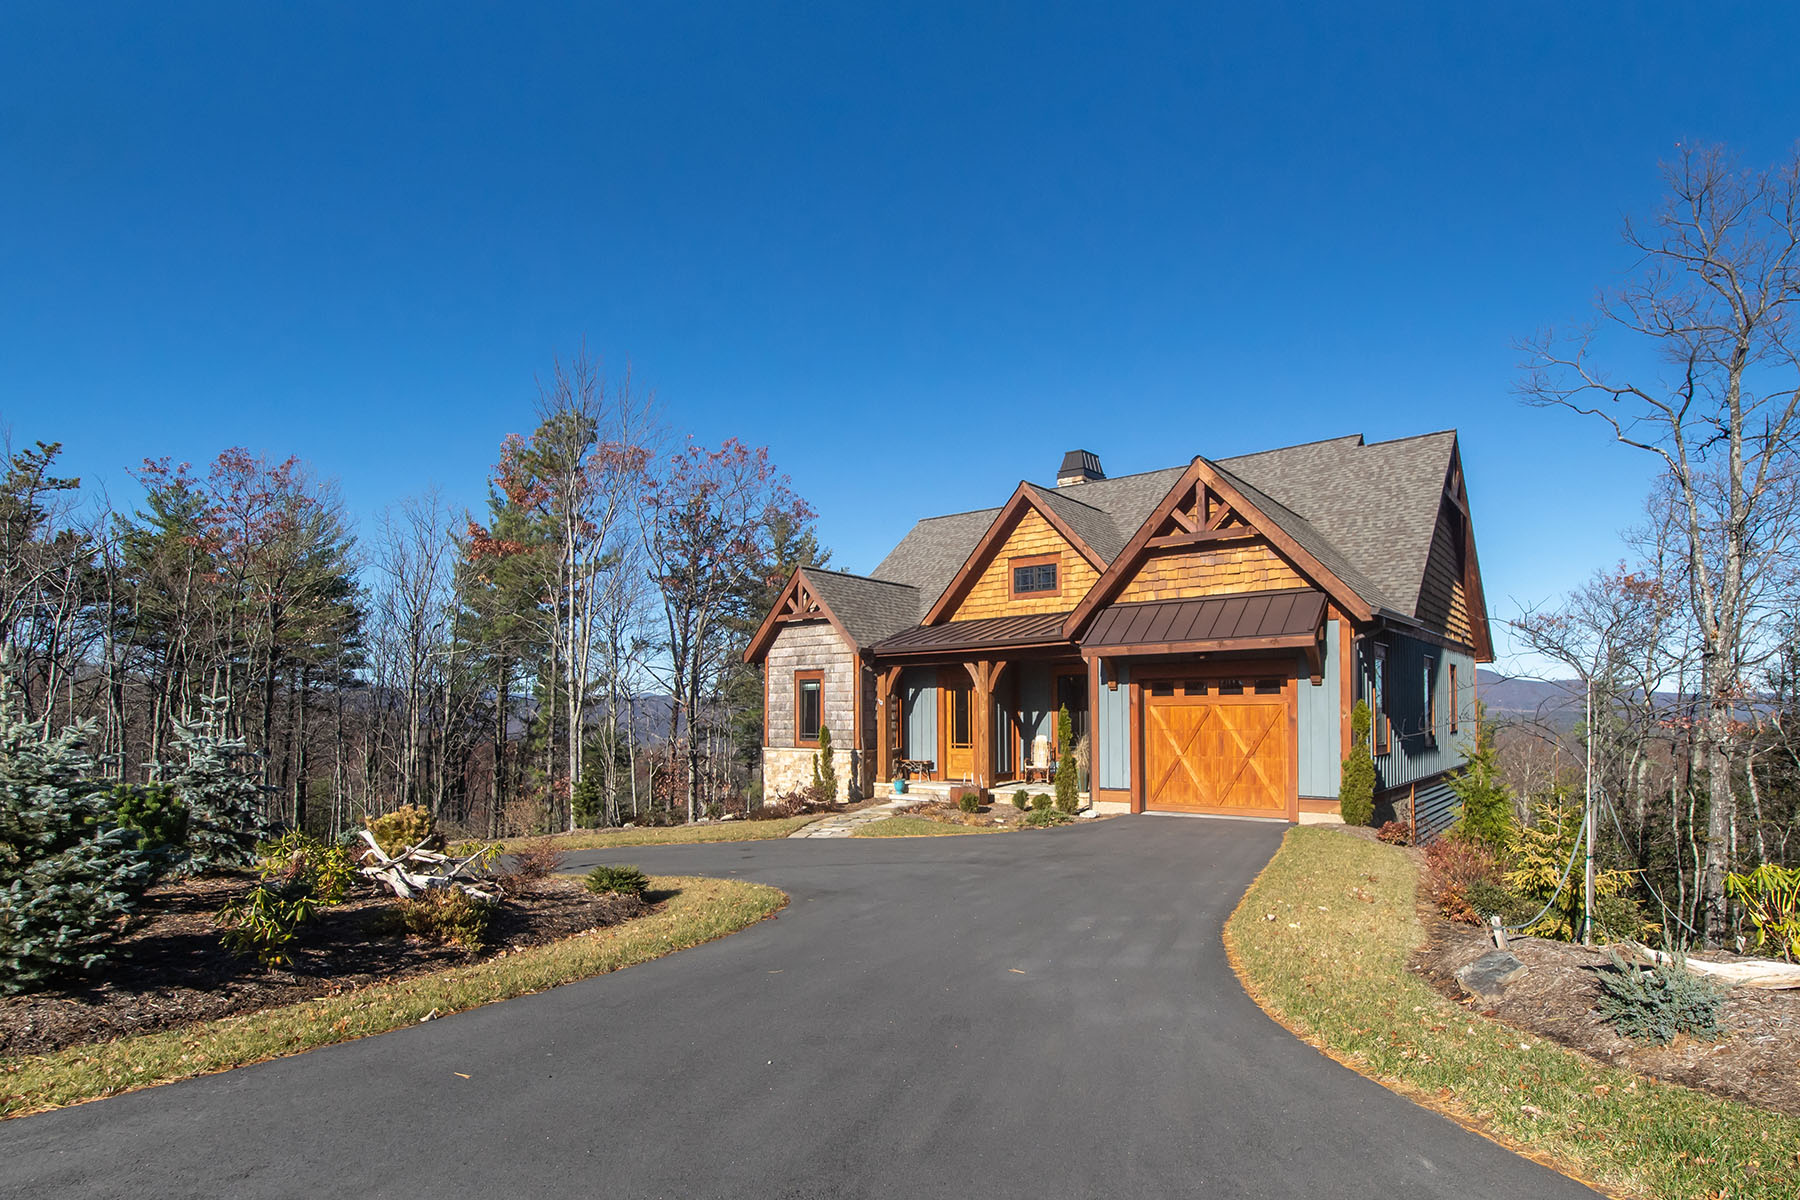 Single Family Homes for Sale at BLUE RIDGE MOUNTAIN CLUB - BOONE 107 Milfoil Ct Boone, North Carolina 28607 United States